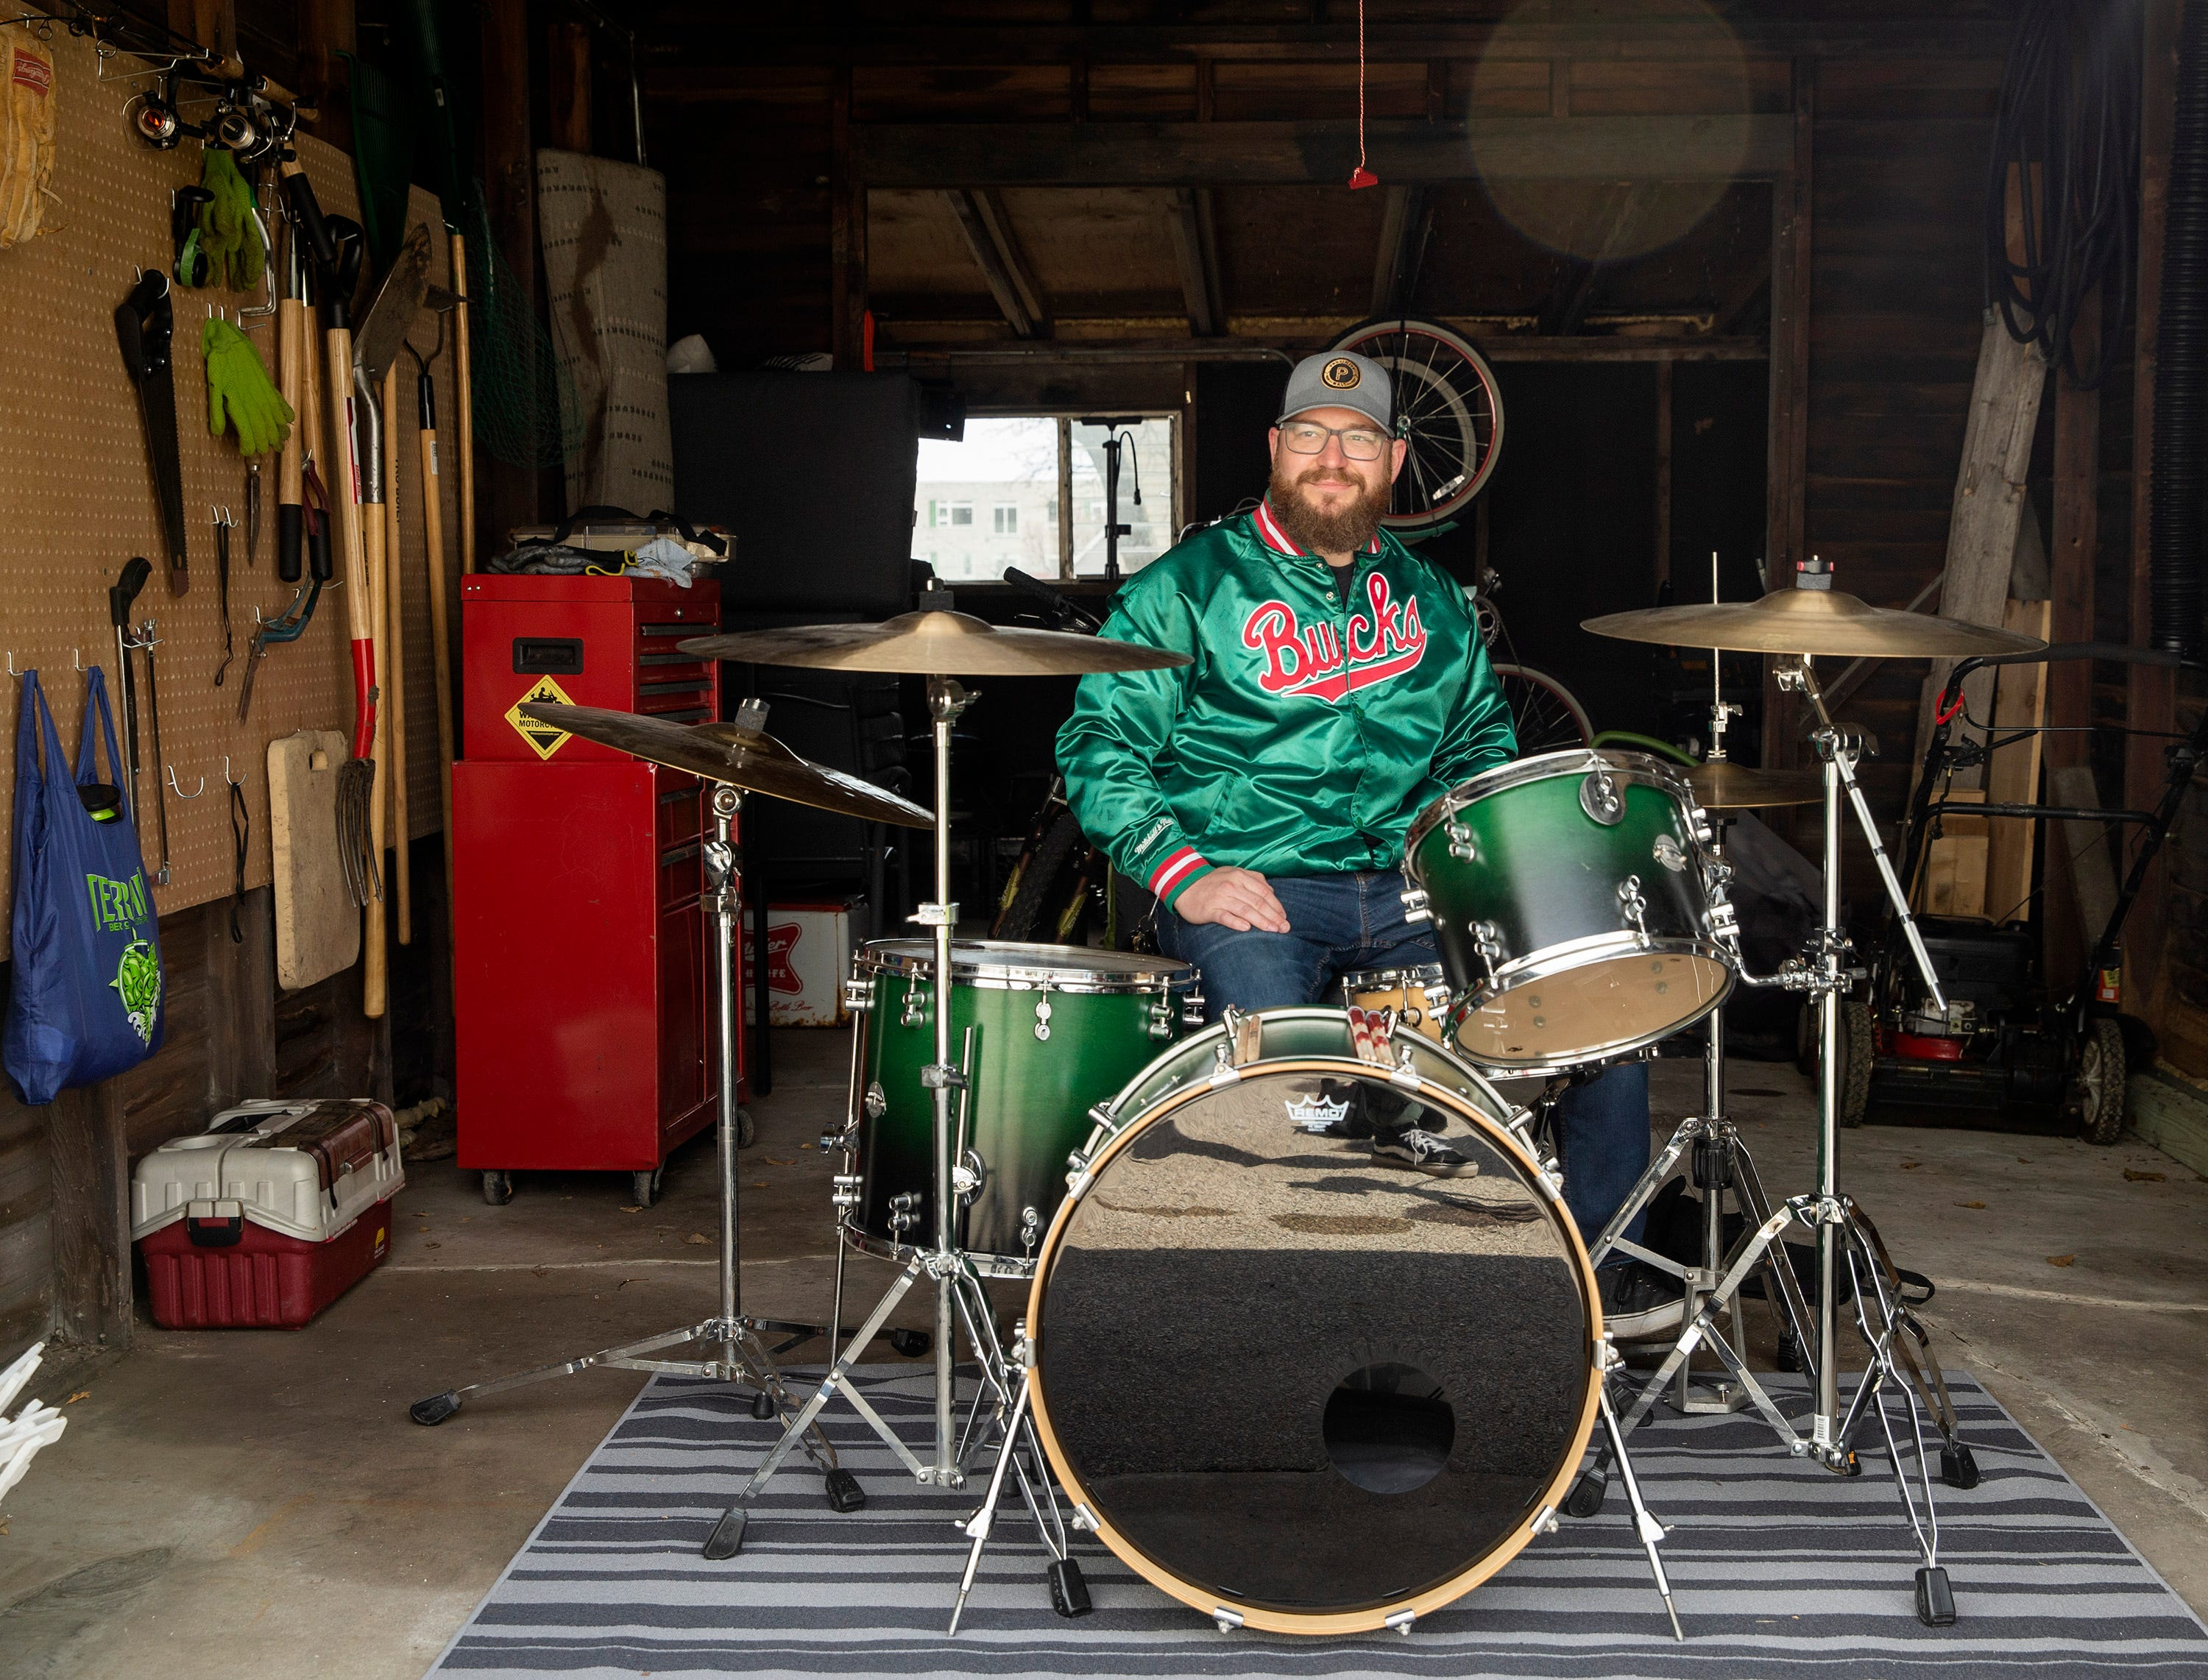 Kyle Ciske sits in front of his drum set in his garage in West Allis. Ciske was the head brewer for The Explorium Brewpub but was laid off nearly four weeks ago. Ciske has started filling the days with activities he once neglected.